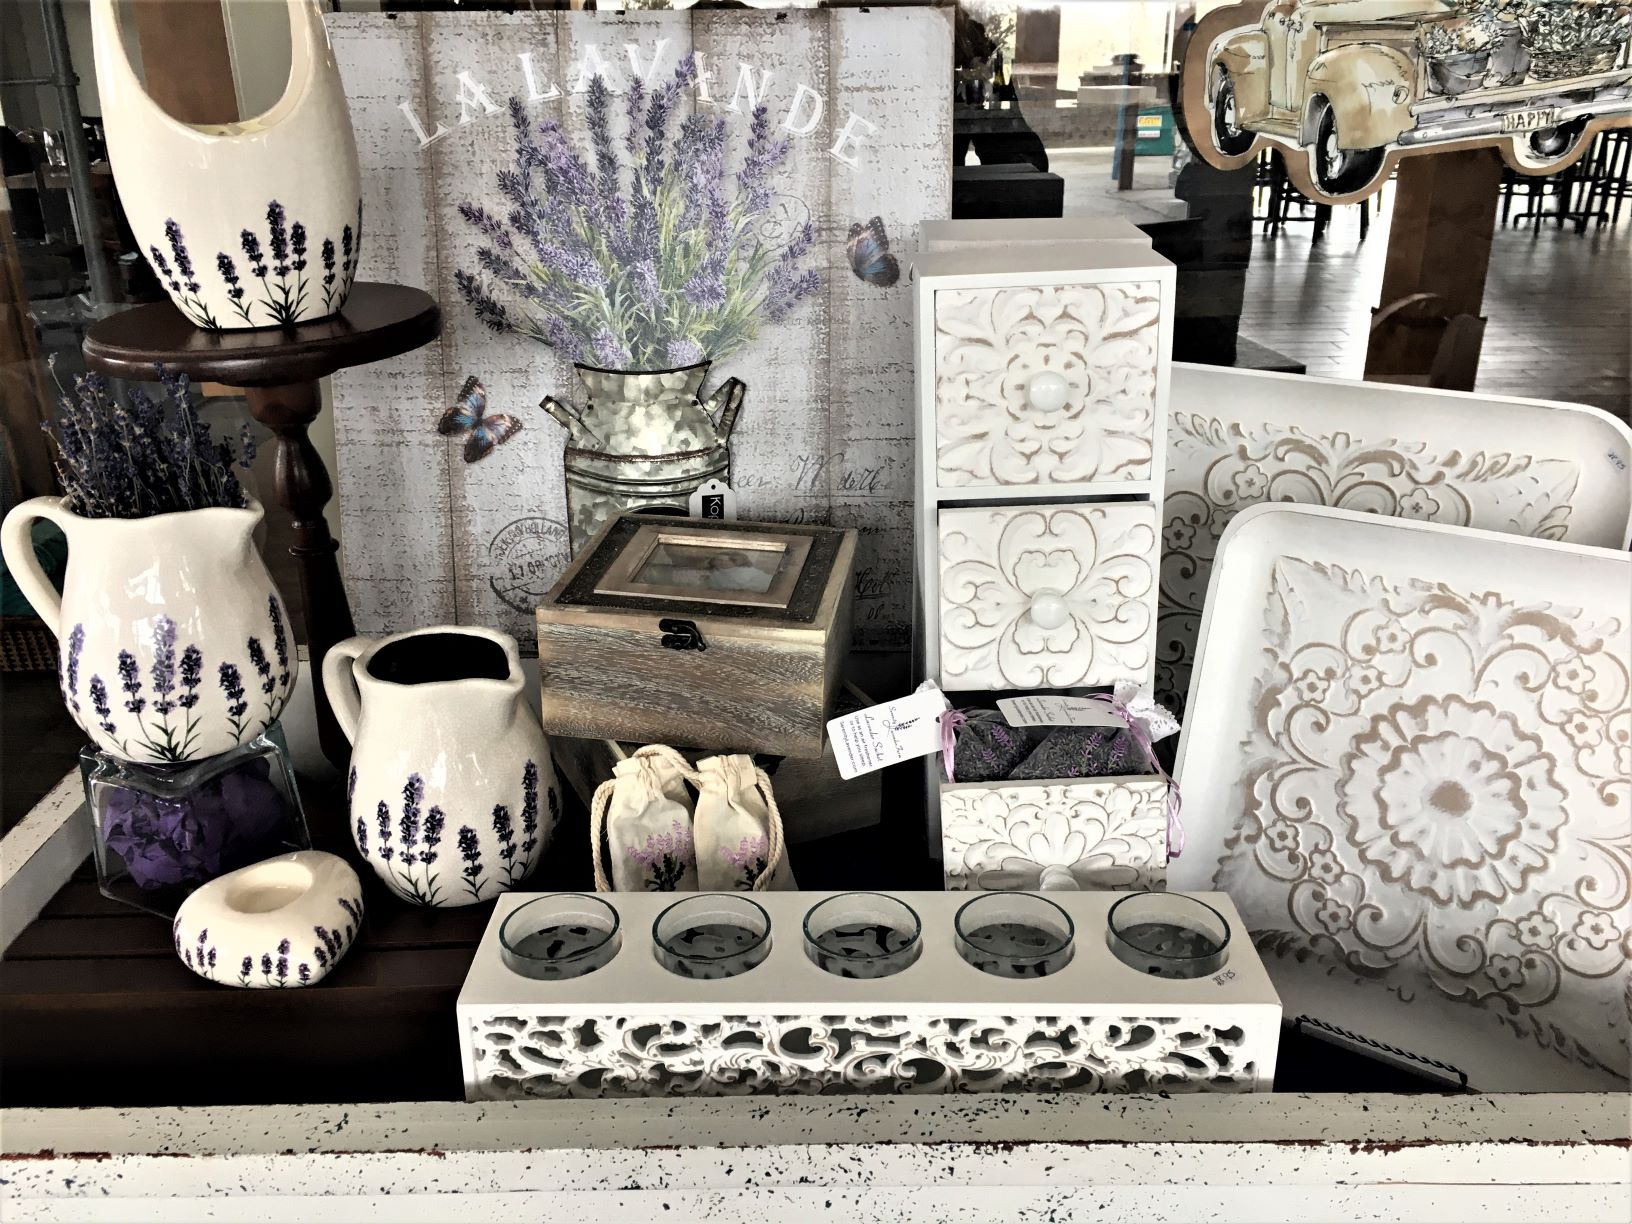 Gift Shop at Serenity Lavender